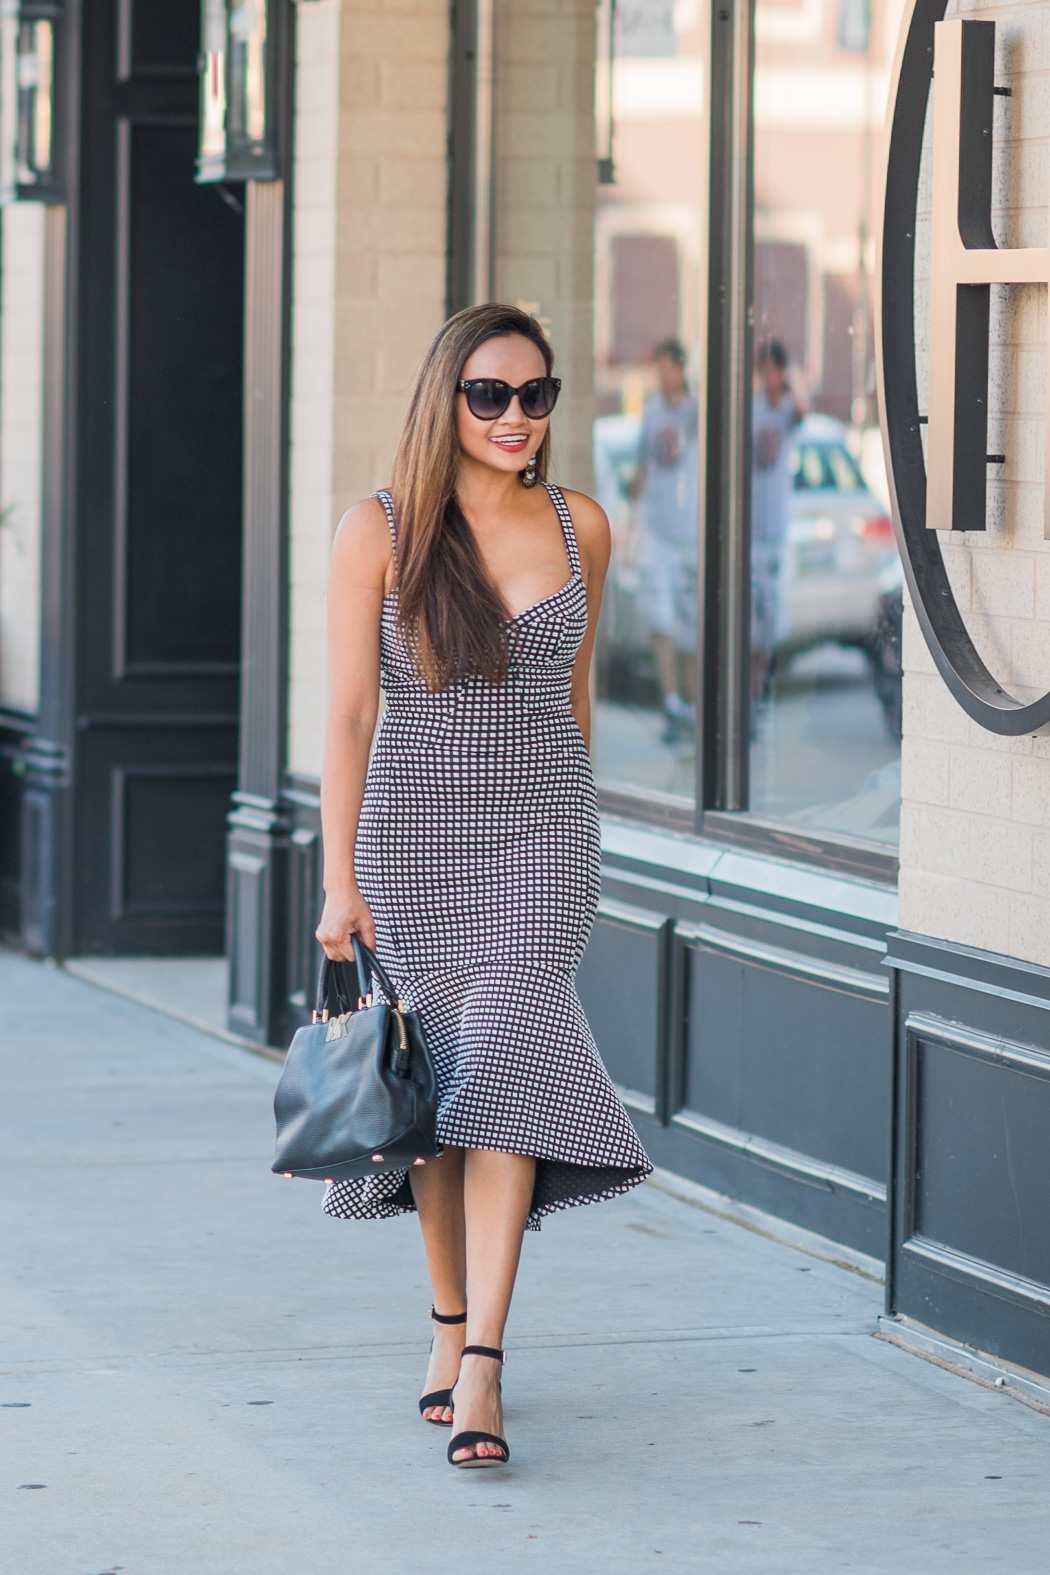 Classic Gingham Print Street Style Outfit Ideas Colors Of